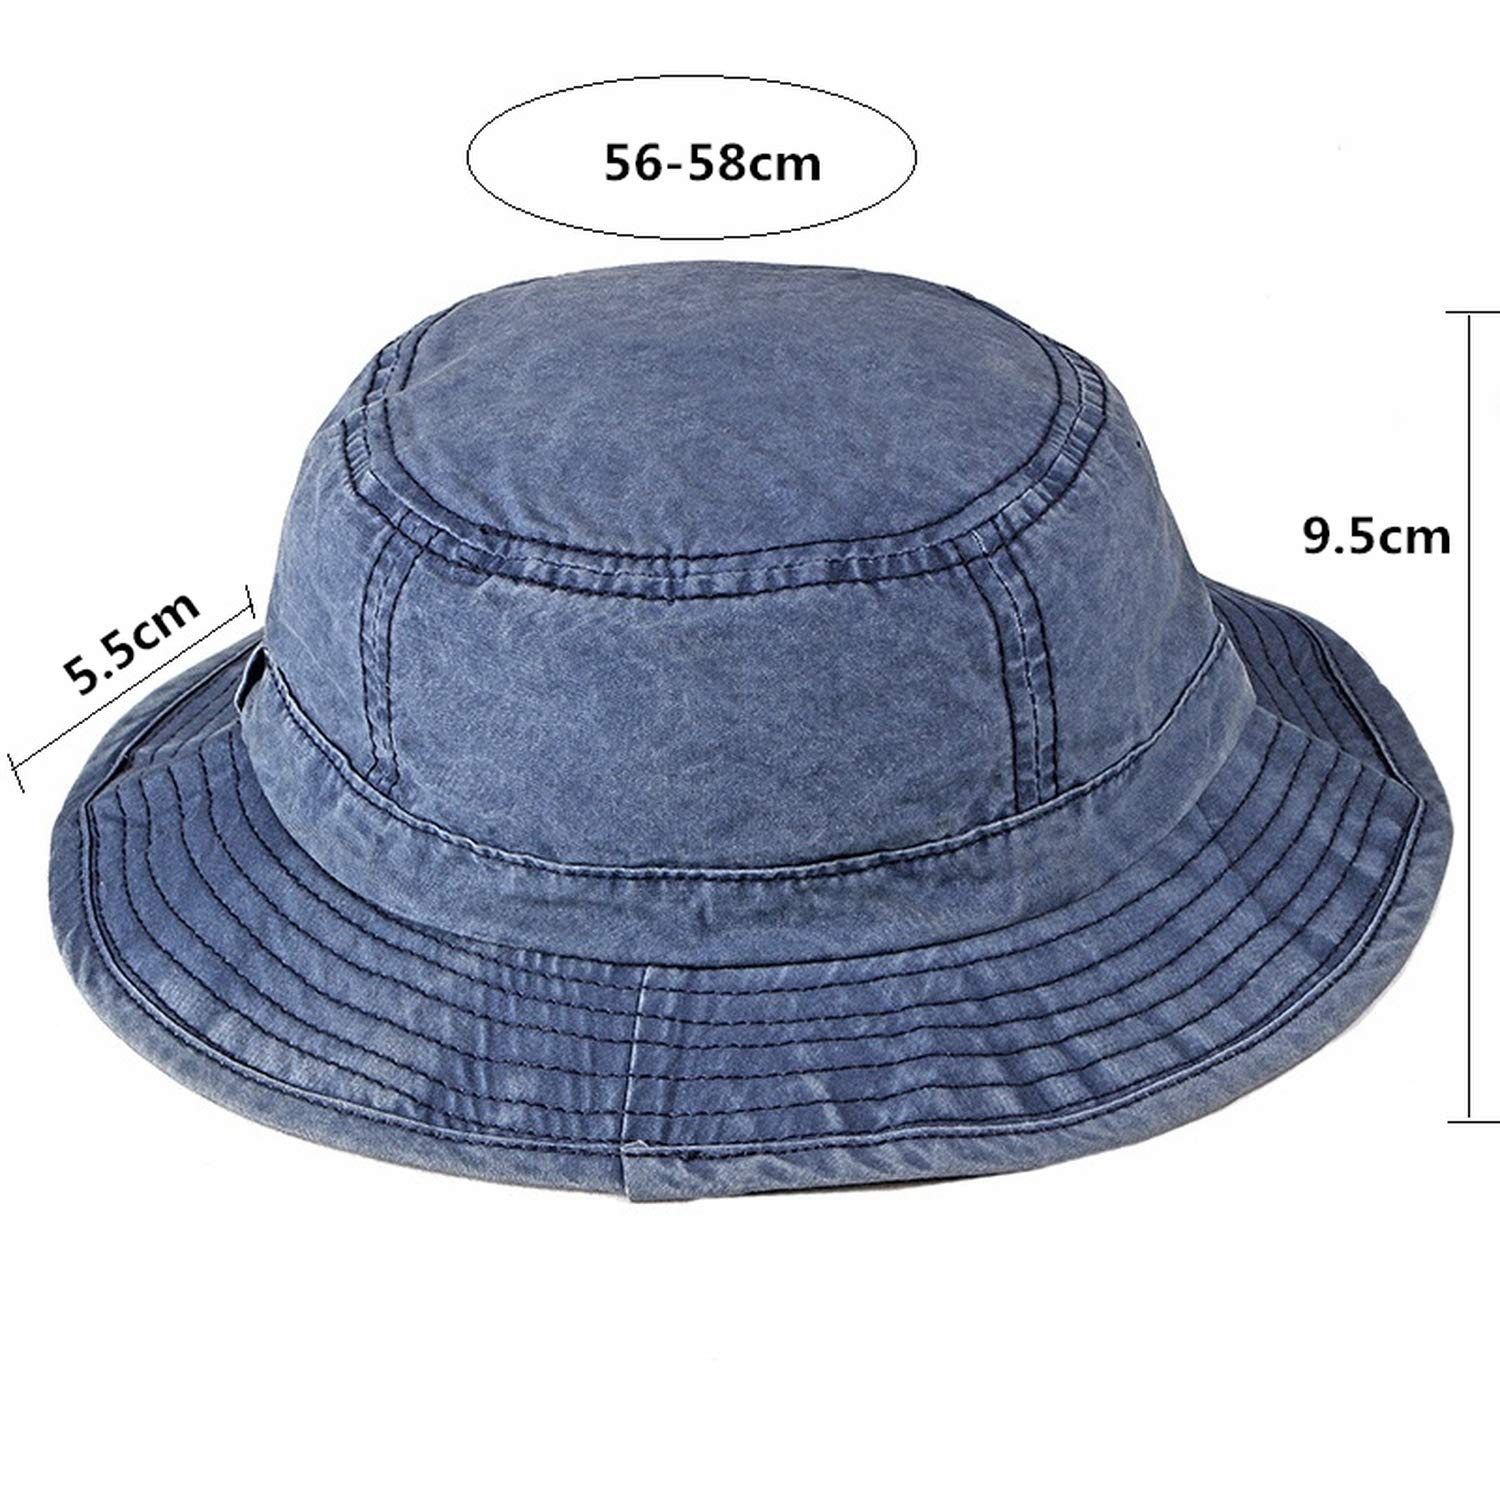 Washed Bucket Hat for Men Women Outdoor Sun Visor Hats Bone Fishing Hat  Fisherman Army Green at Amazon Women s Clothing store  c0c22c65f086